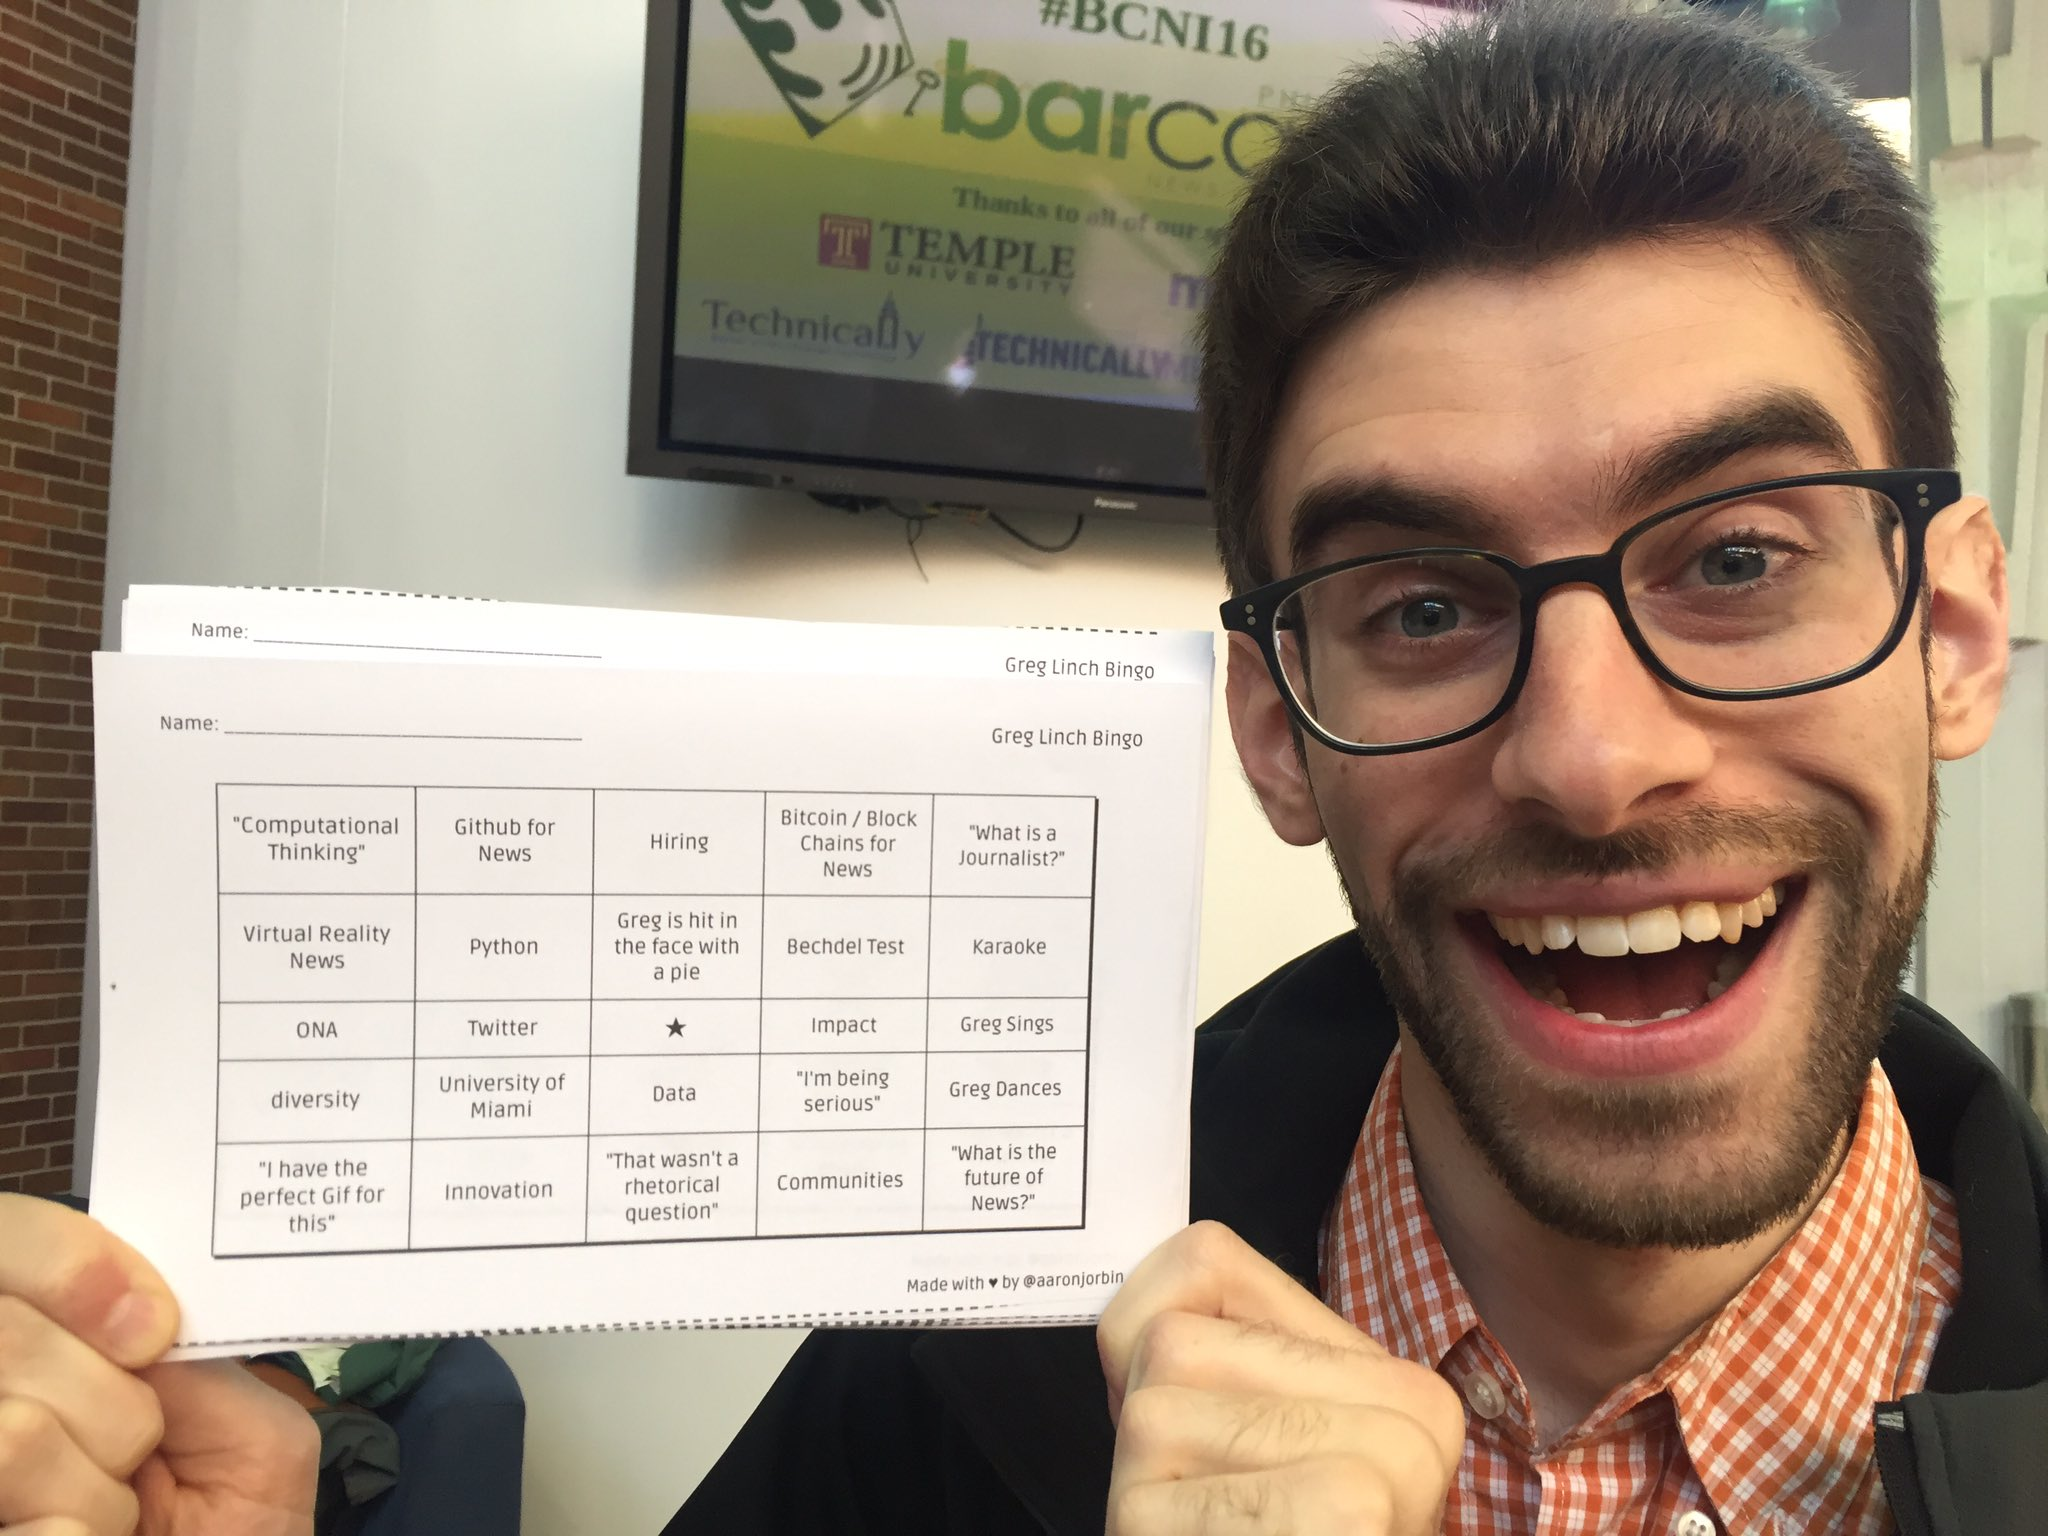 Who is excited to play @greglinch bingo at #bcni16 ? https://t.co/LSppgkq5US